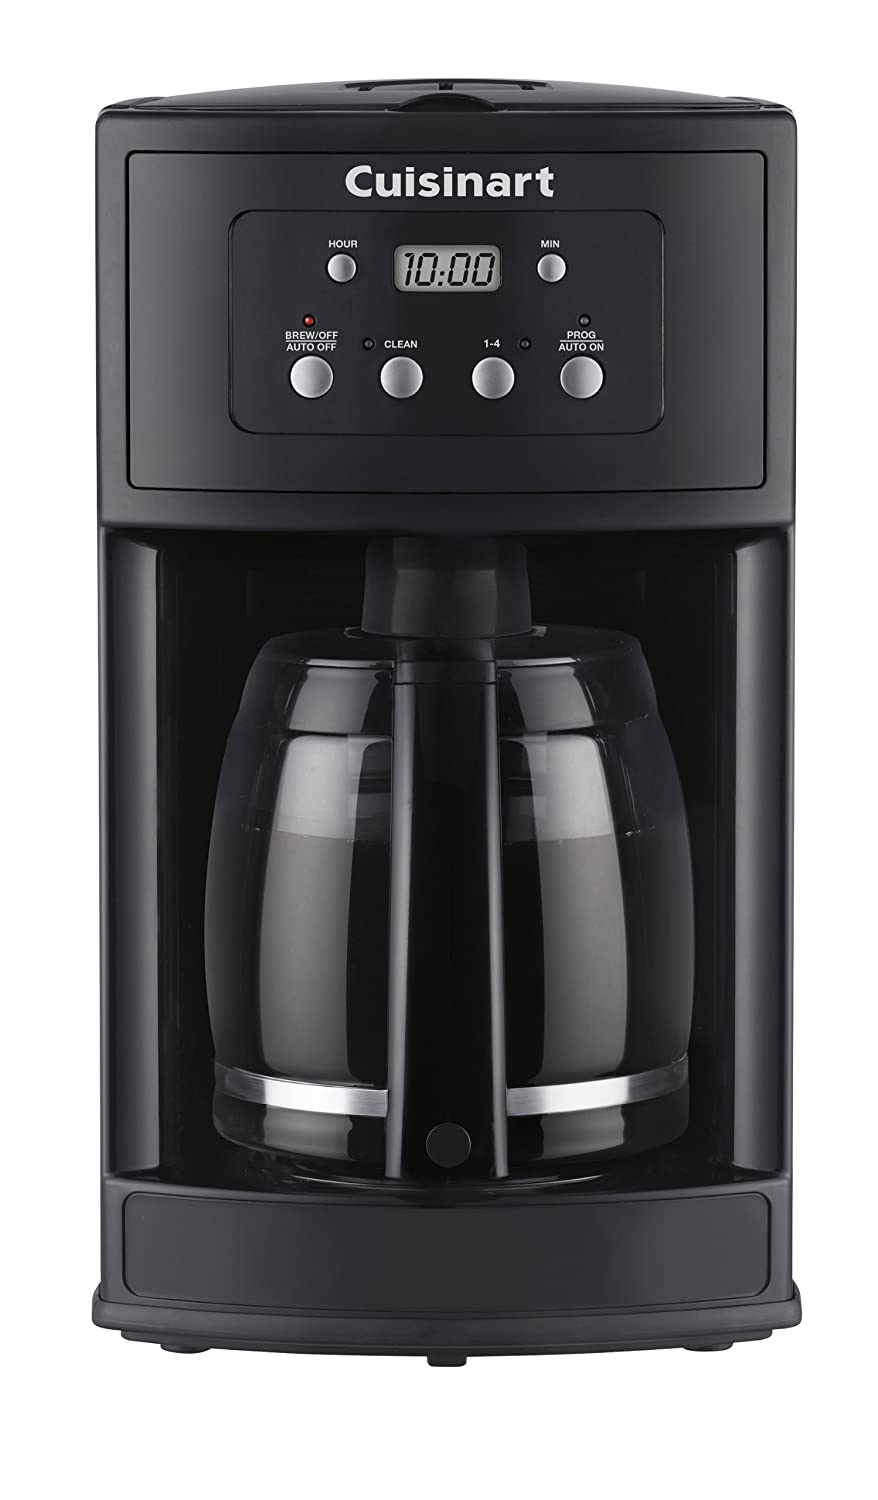 Cuisinart Coffee Maker Quit Brewing : Cuisinart Coffee Maker Won T Brew symbols for circuit diagrams